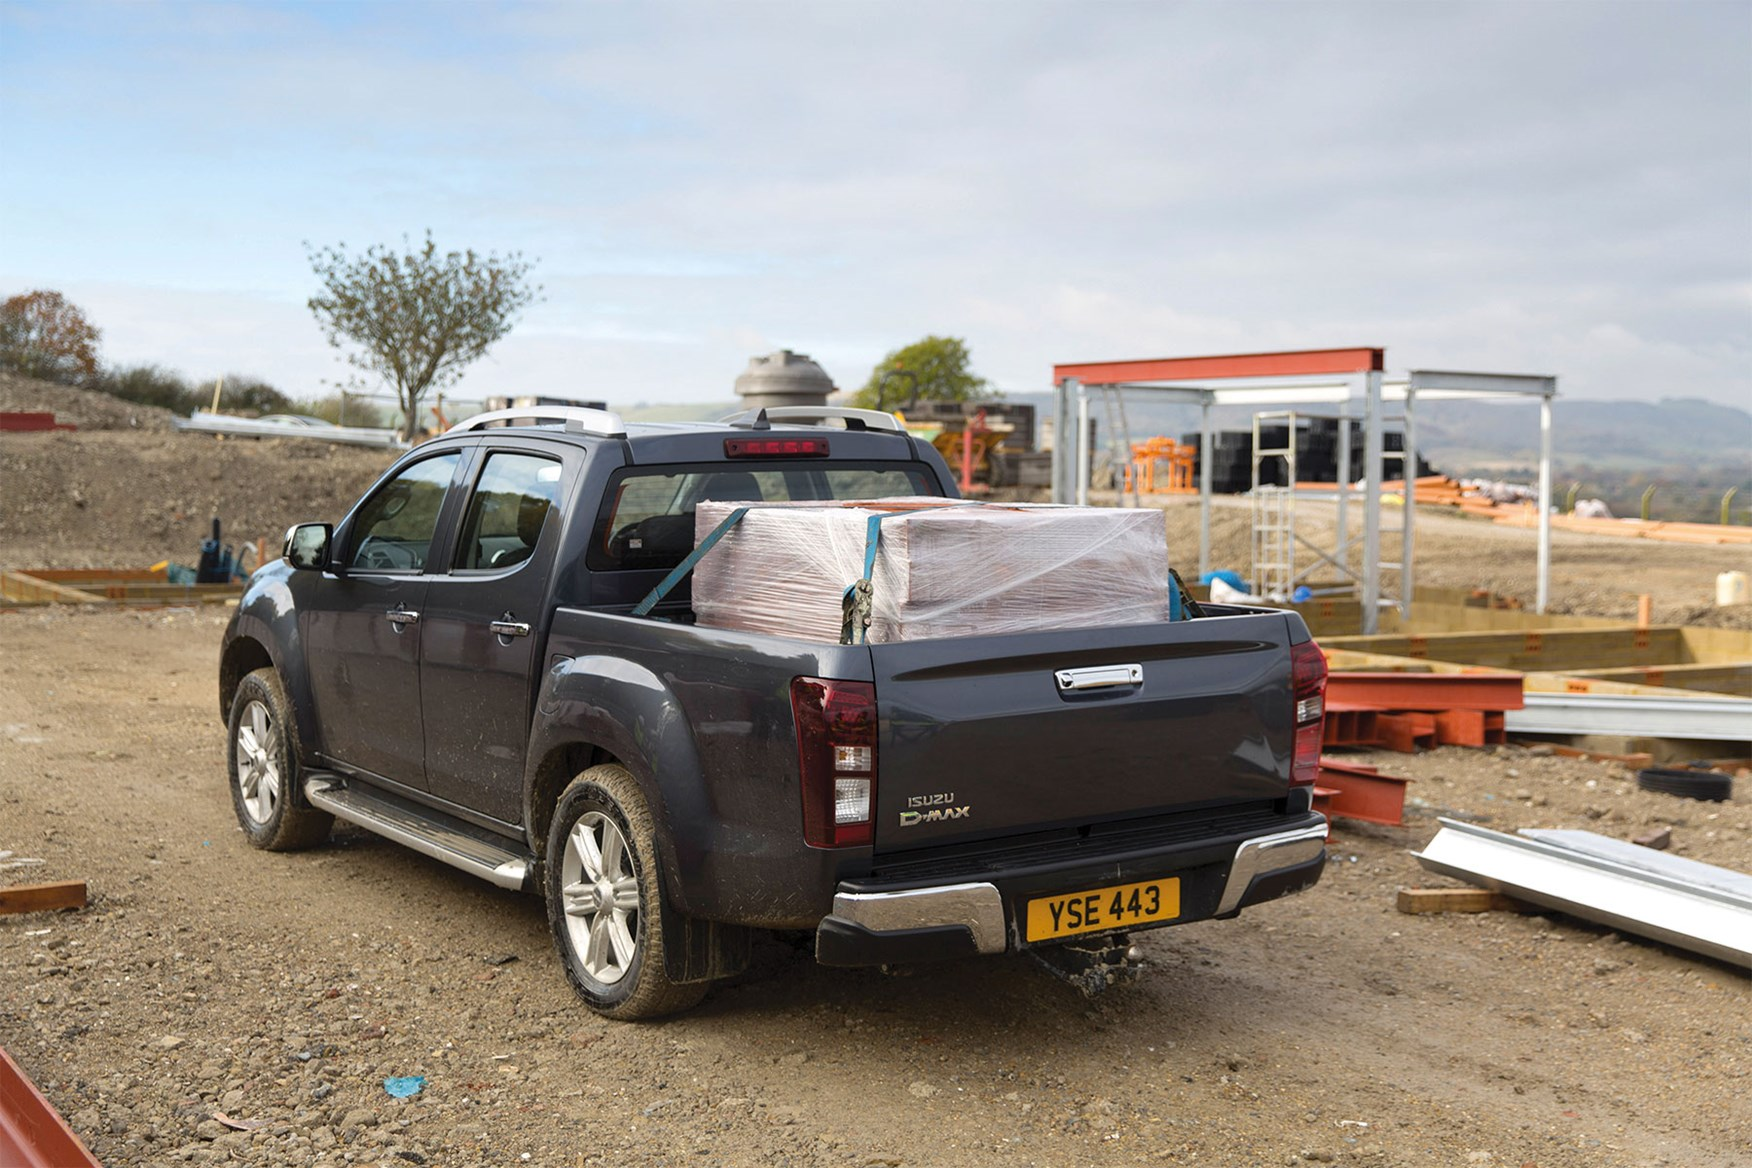 Isuzu D-Max load area dimensions, rear view, load bed fully loaded